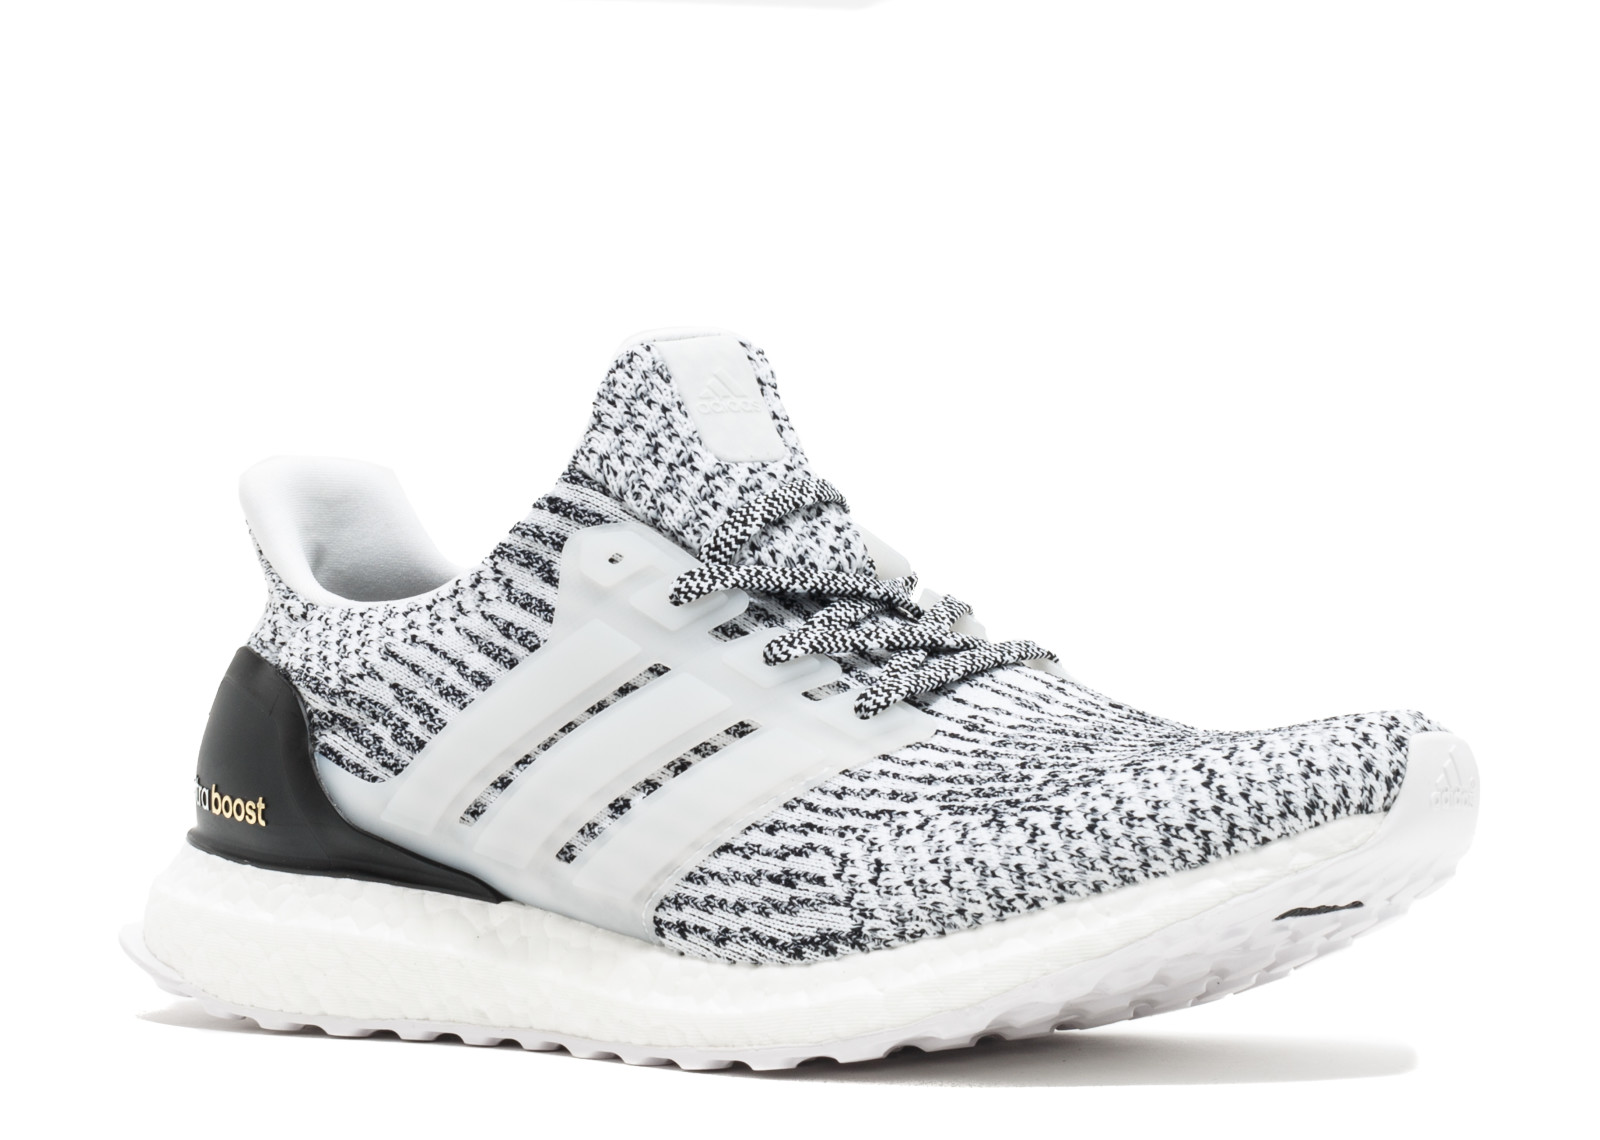 Ultra Boost 'Oreo' - S80636 - Size 8.5